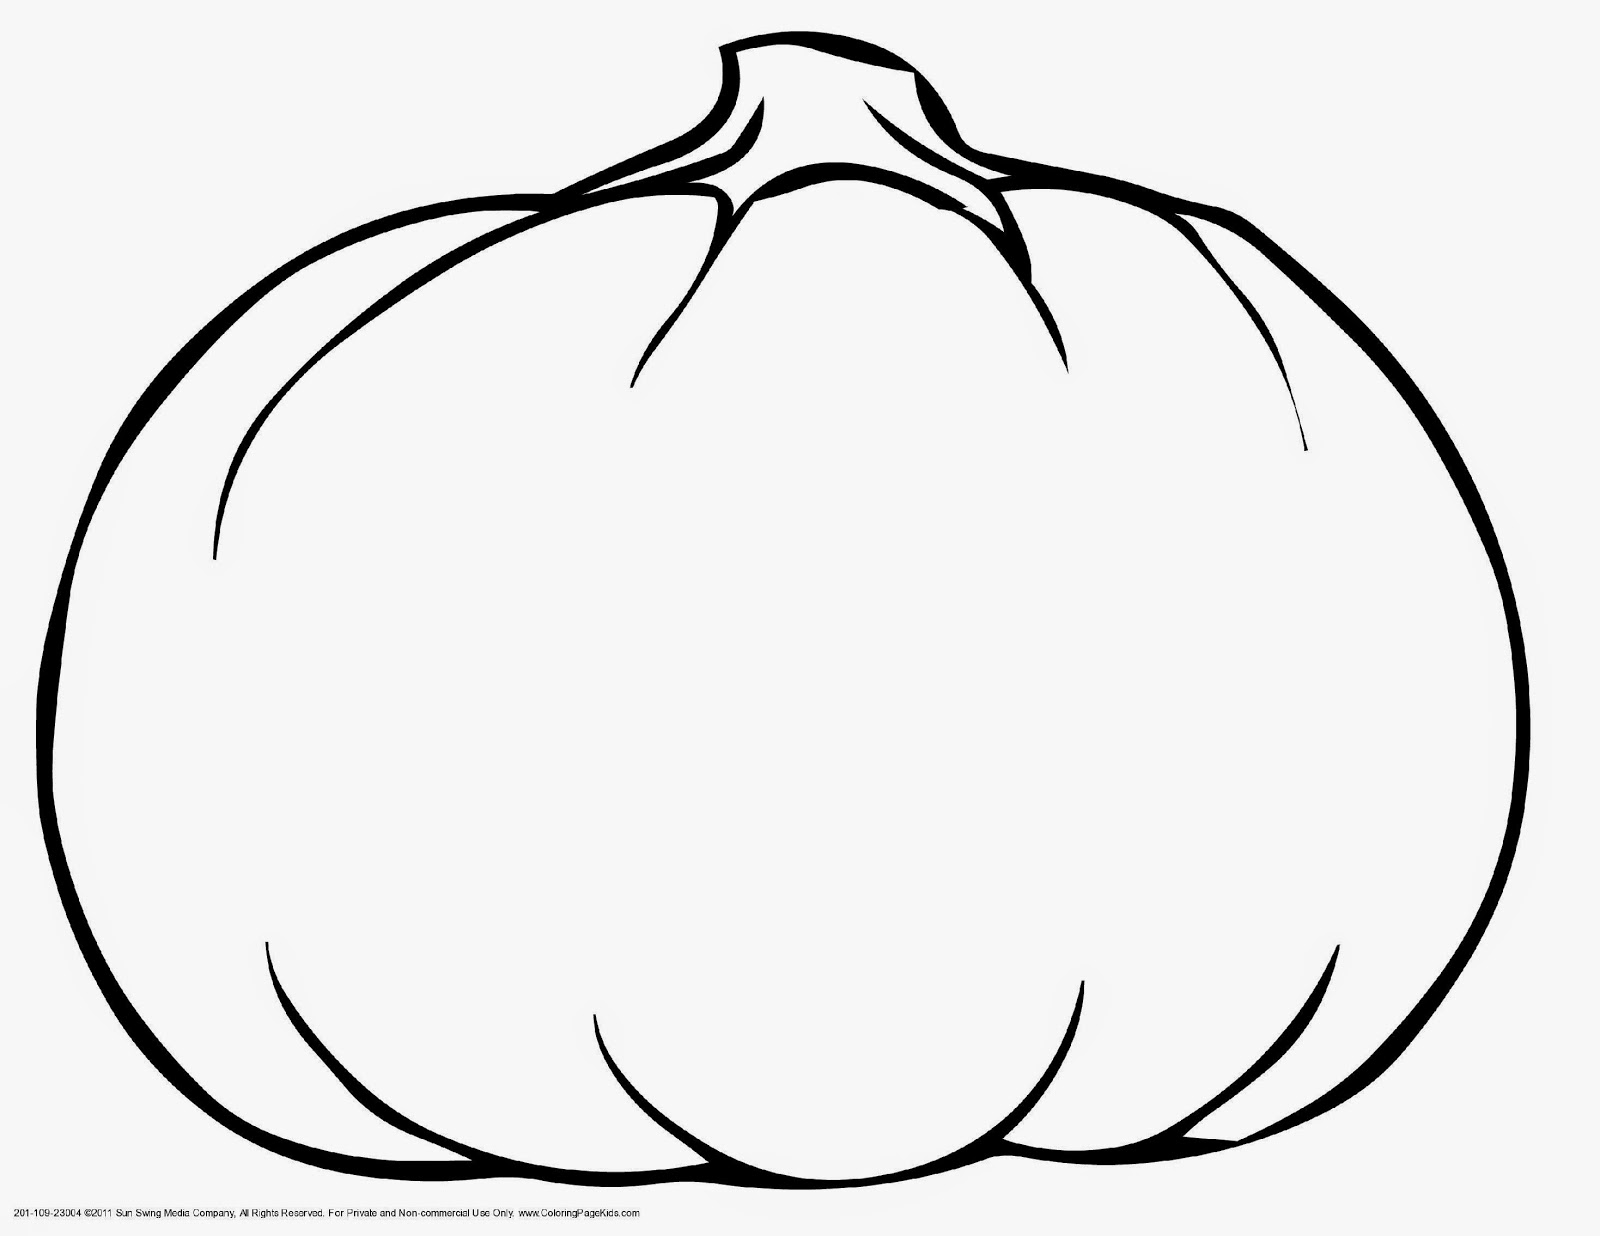 hight resolution of pumpkin black and white smiley pumpkin clipart black and white clipartme 2